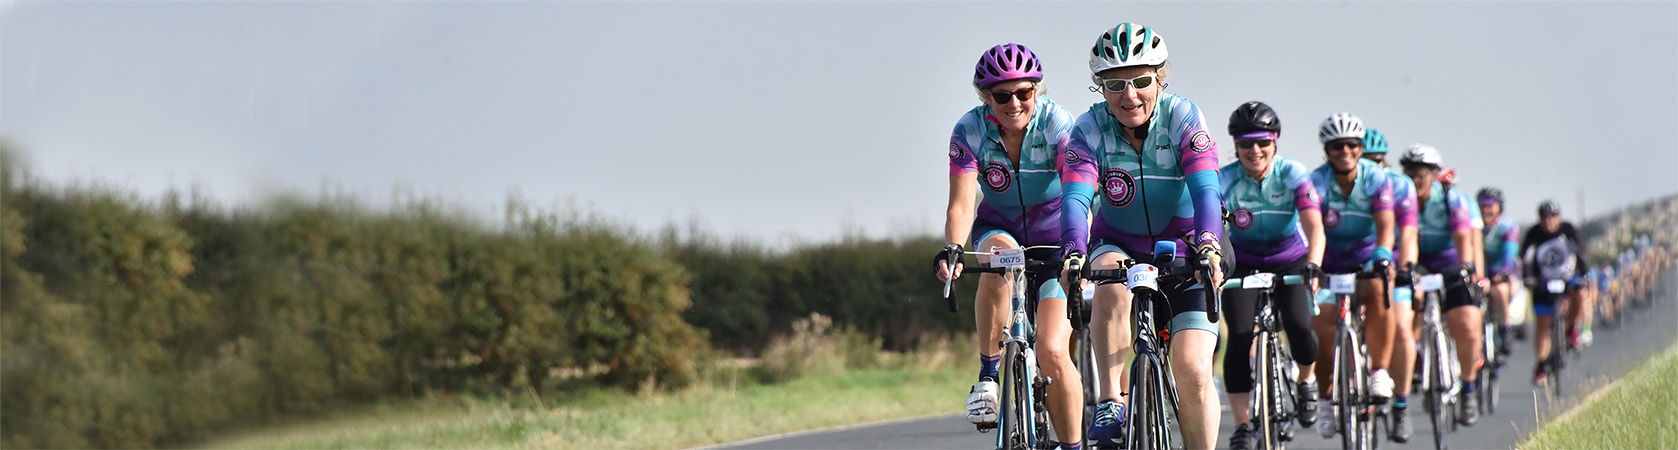 Yorkshire ladies cycling club